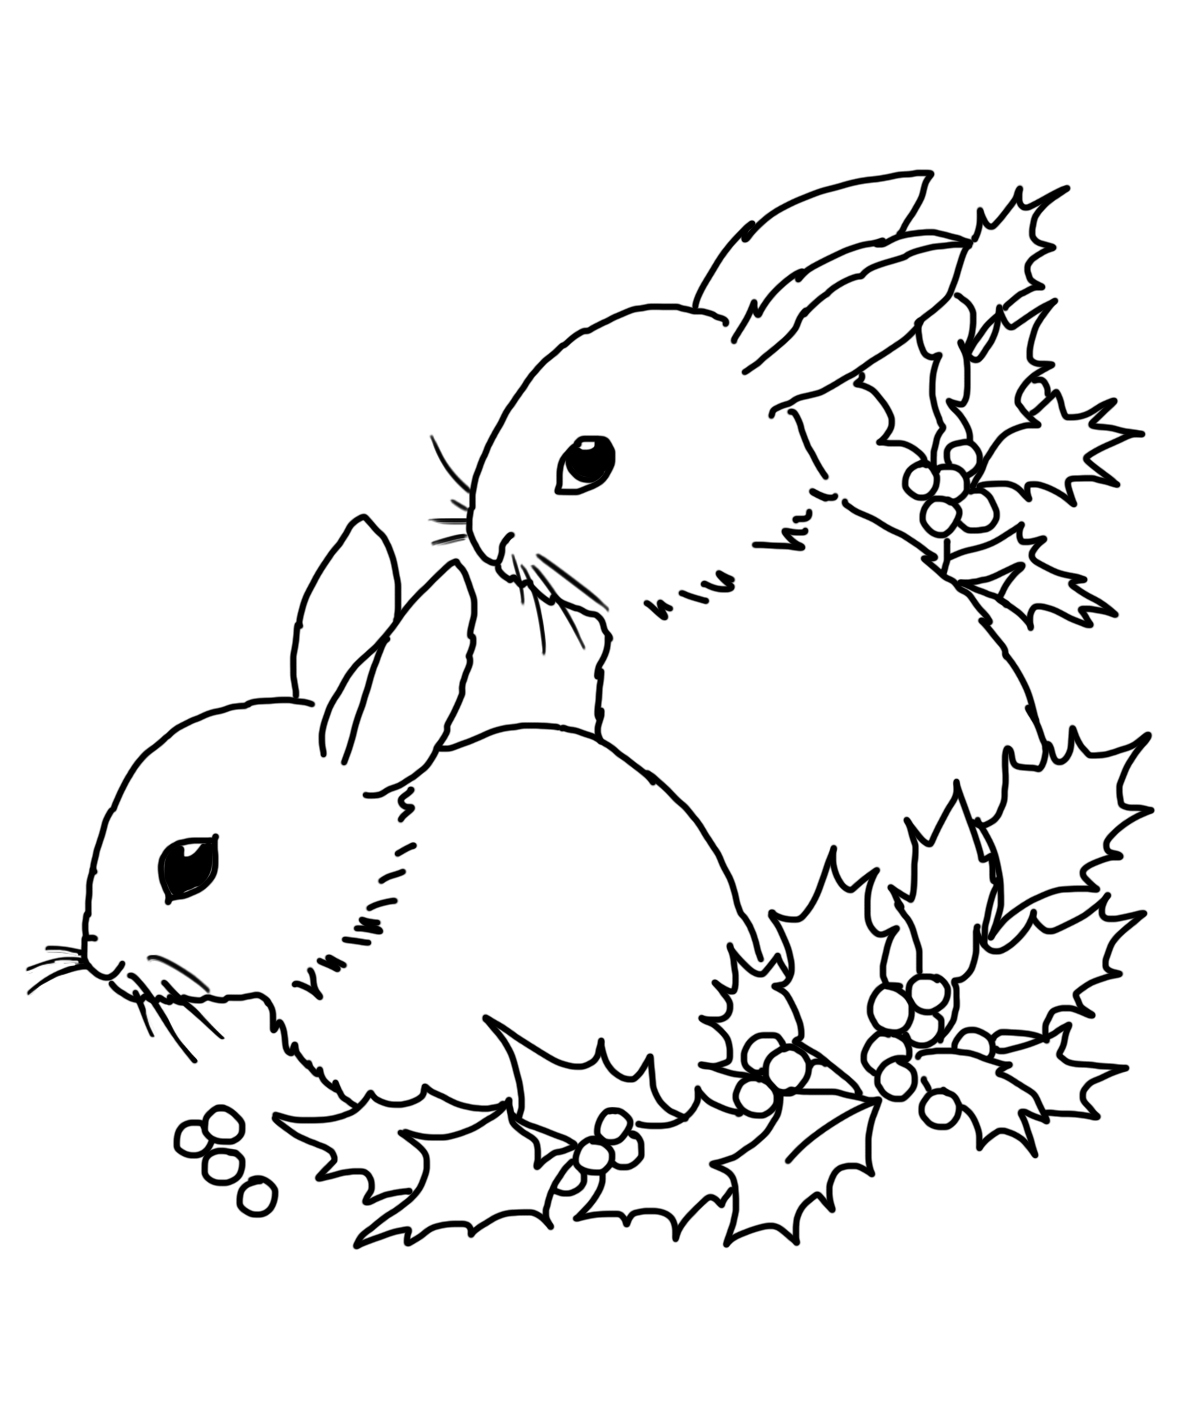 bunnies and holy for Christmas motive